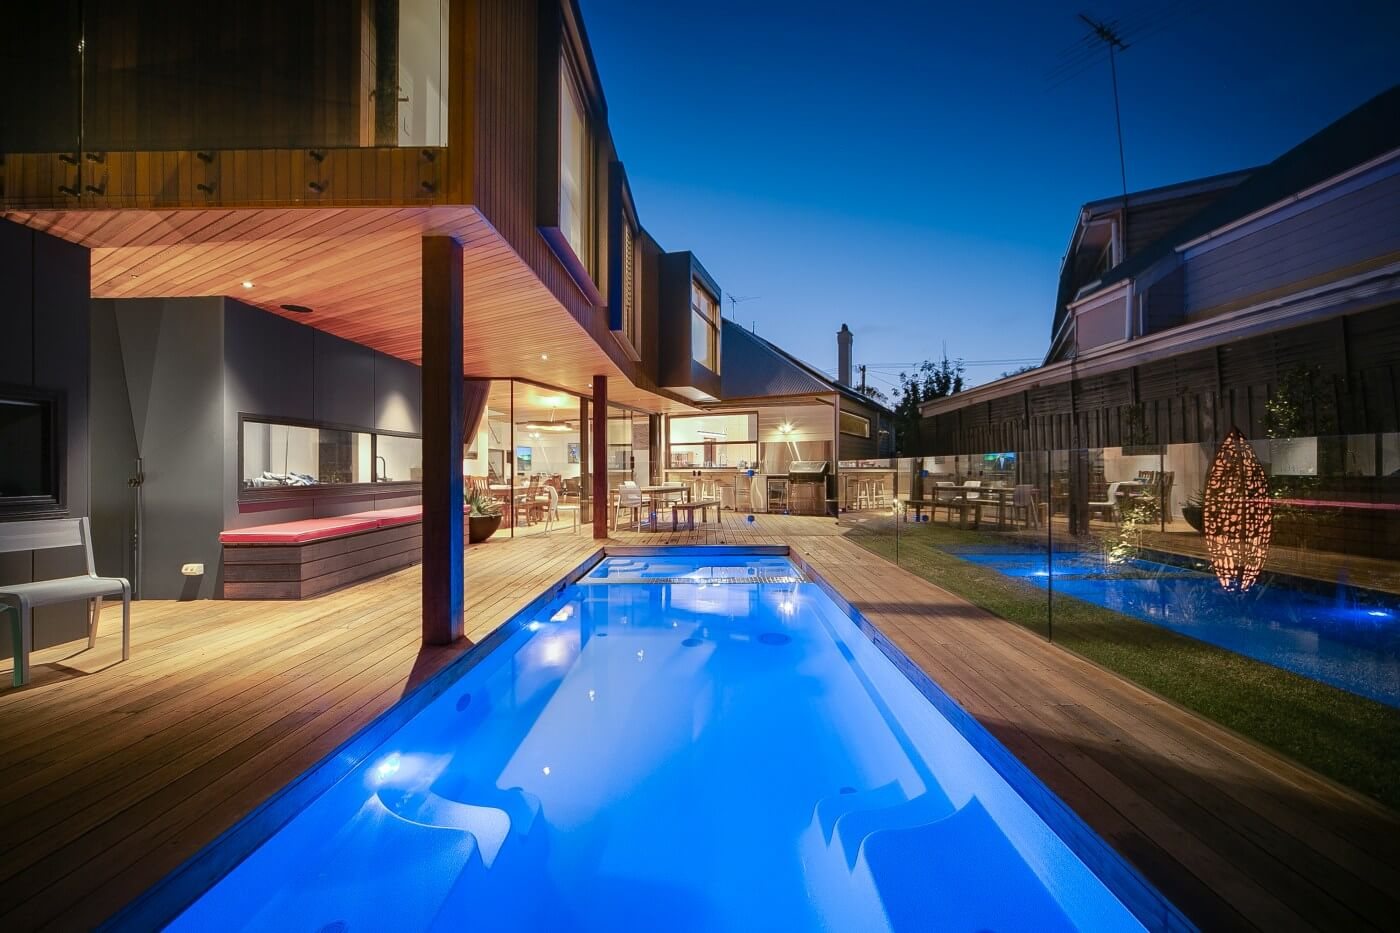 Swimming Pools Melbourne: Your Guide to the Perfect Backyard Pool